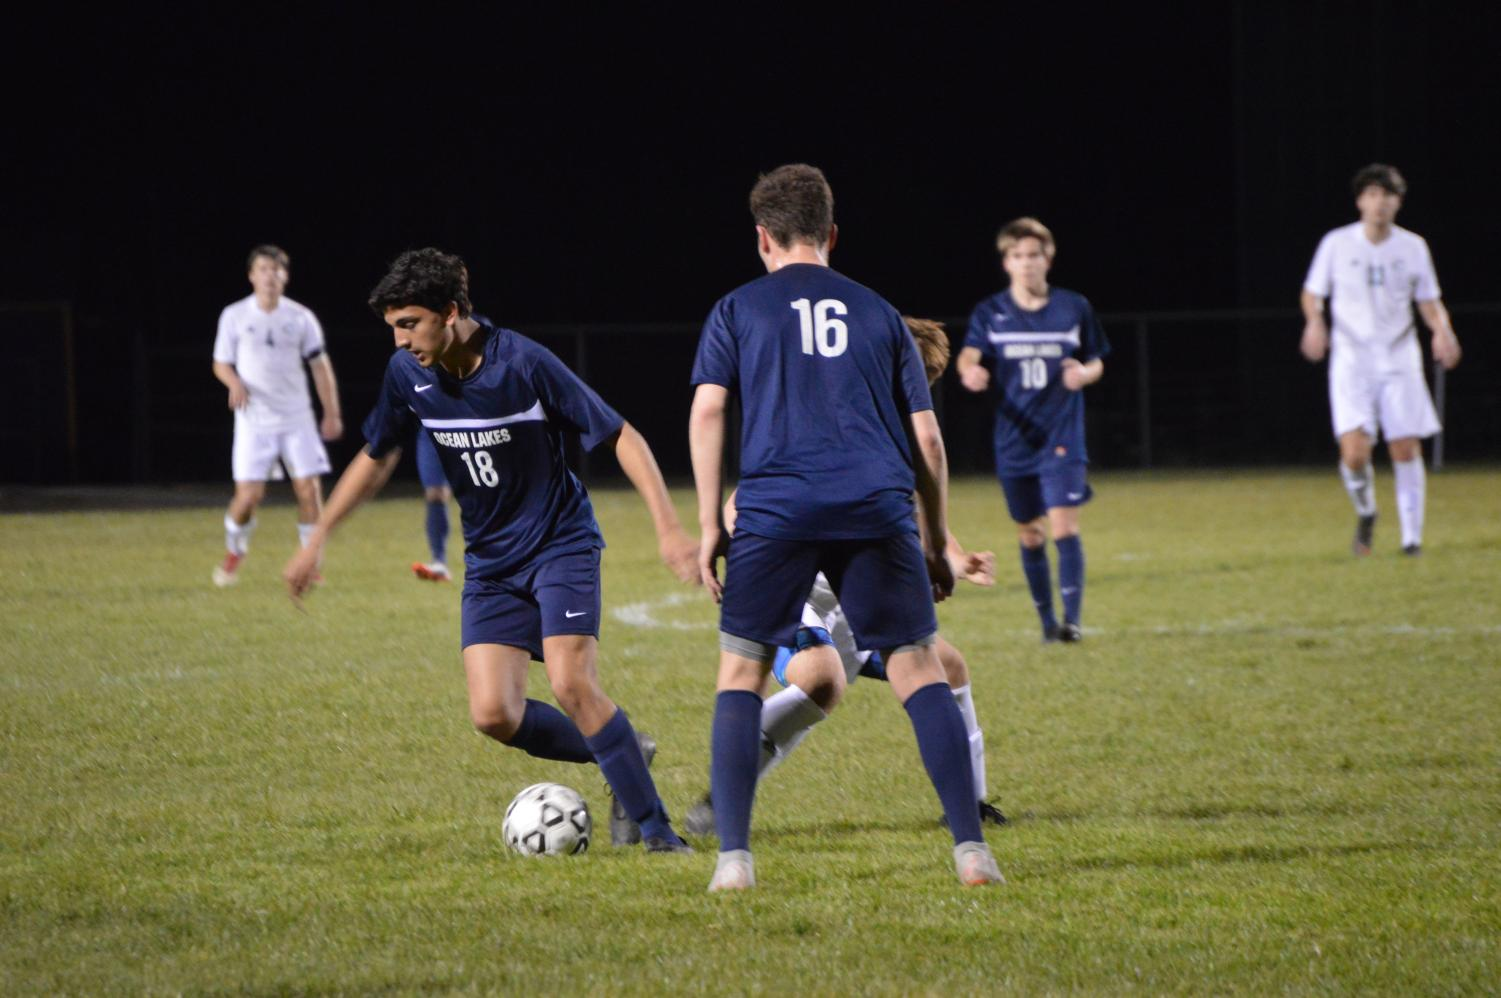 Mid-fielder Matthew Harris dribbles the ball against Cox while senior, defender Dawson Weiss and mid-fielder Troy Daigneau looks on.